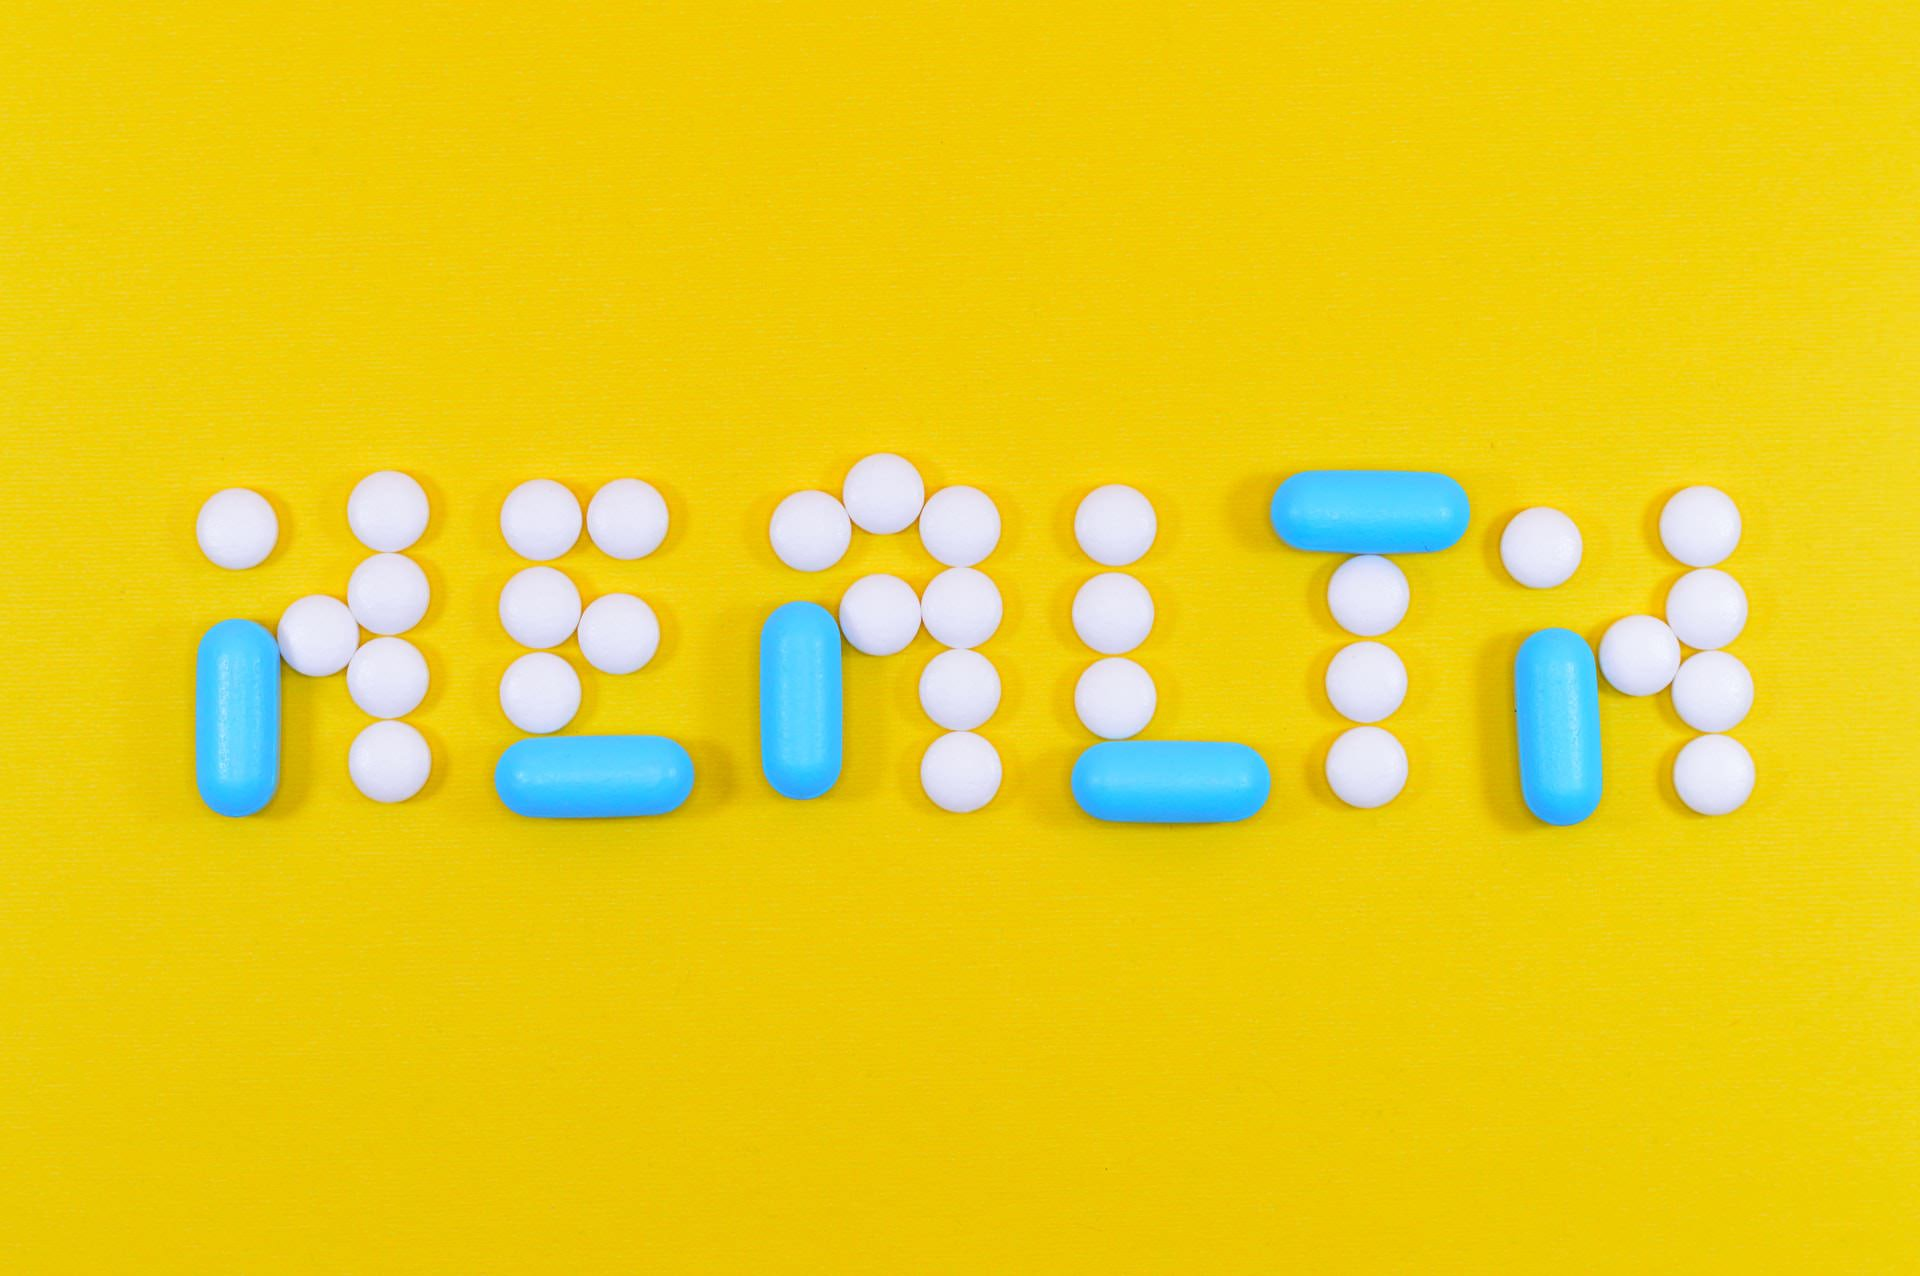 'Health' spelled out in pills